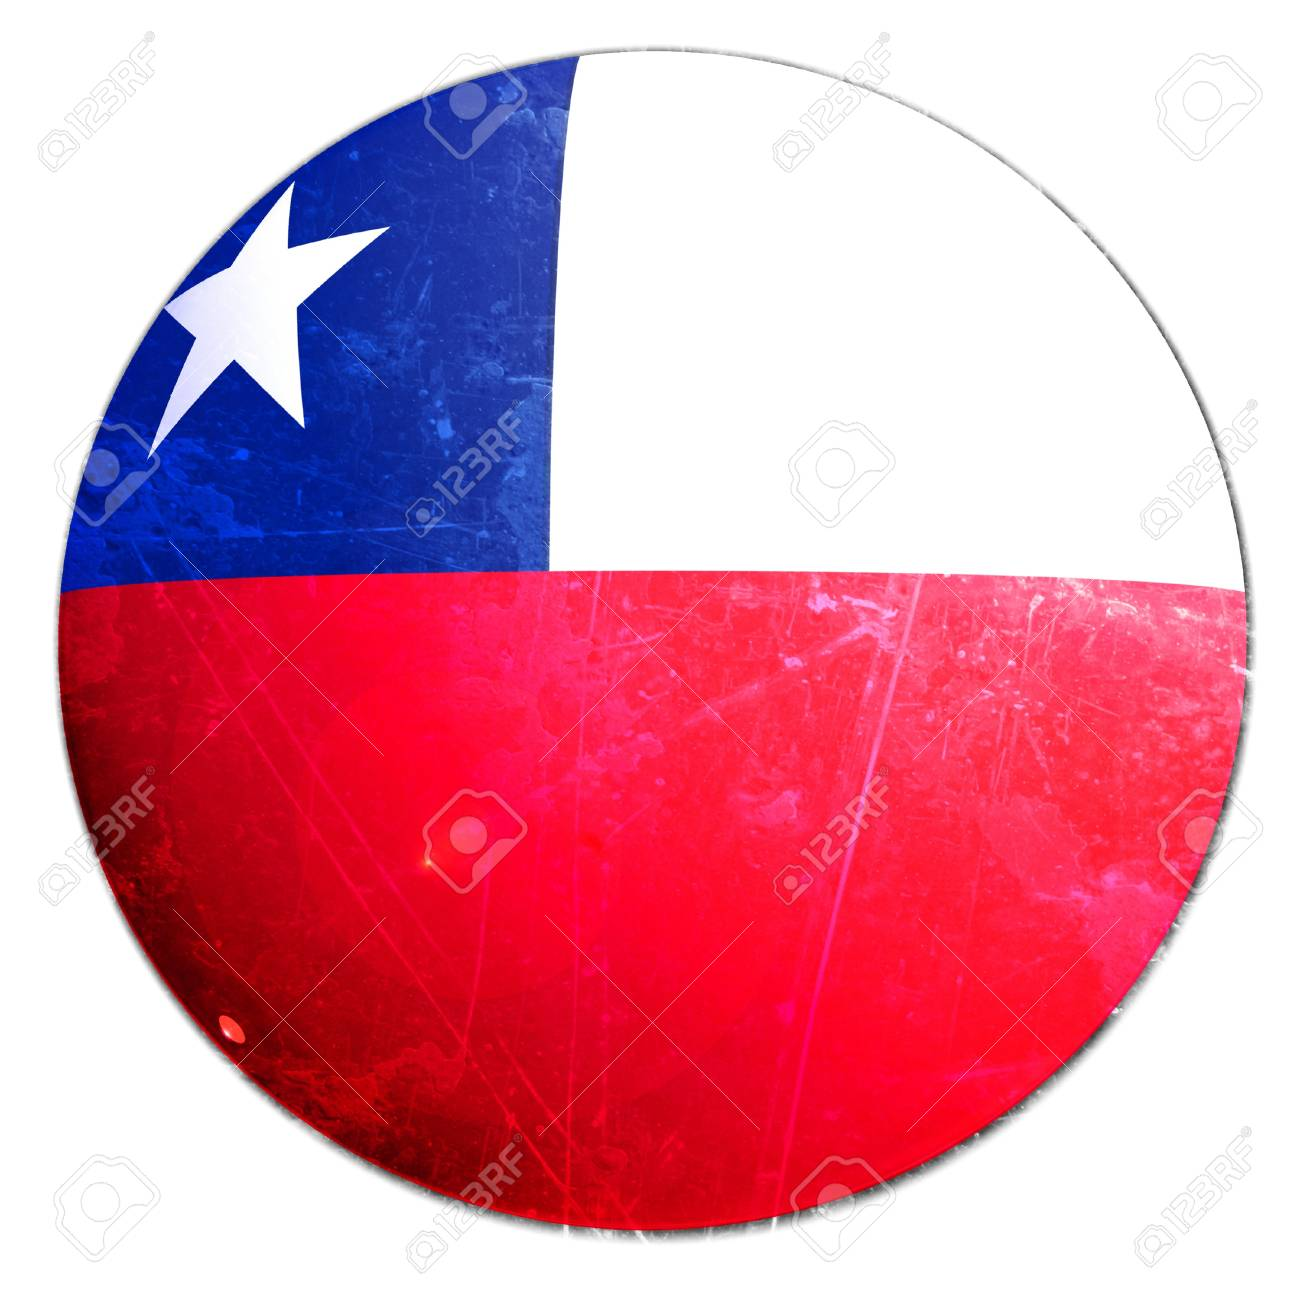 chilean flag on a solid white background Stock Photo - 10340813